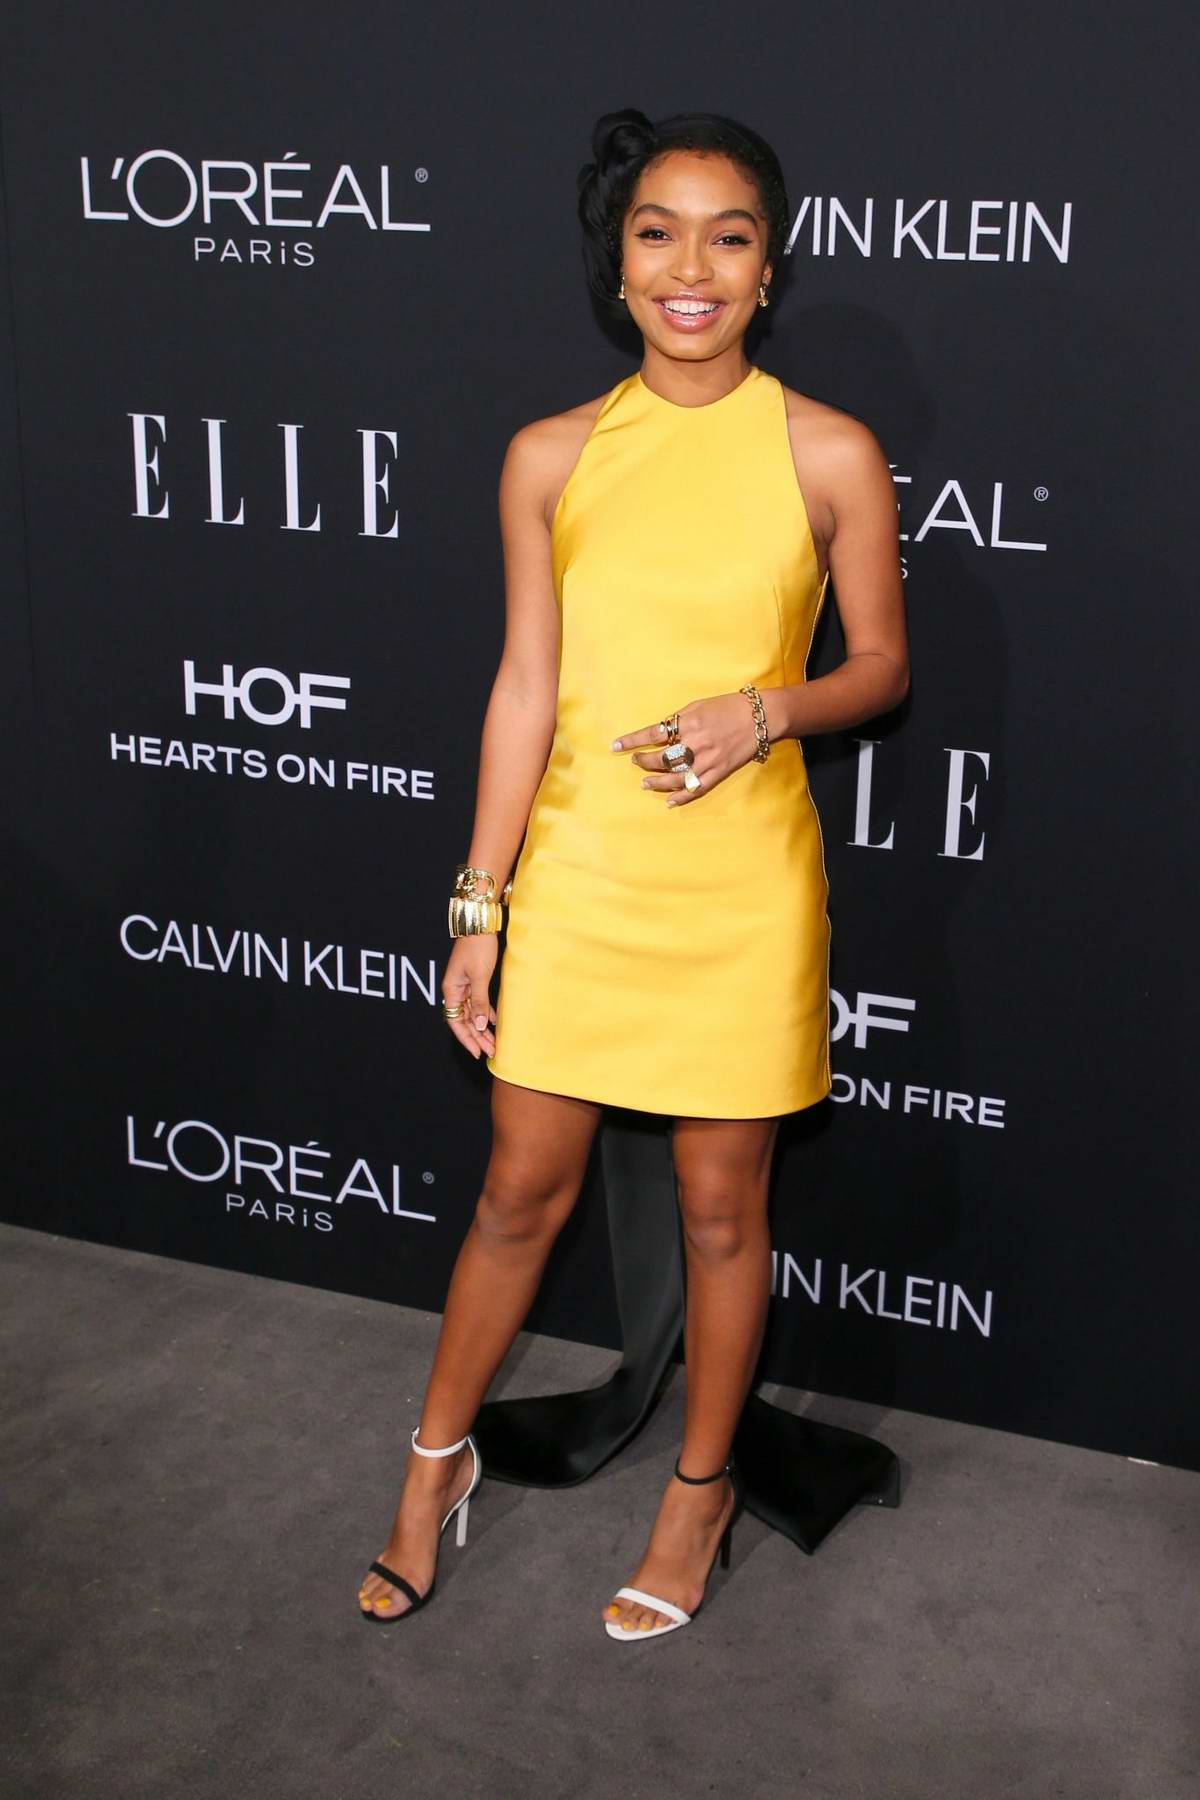 Yara Shahidi attends ELLE's 25th Annual Women In Hollywood Celebration at the Four Seasons Hotel in Beverly Hills, Los Angeles